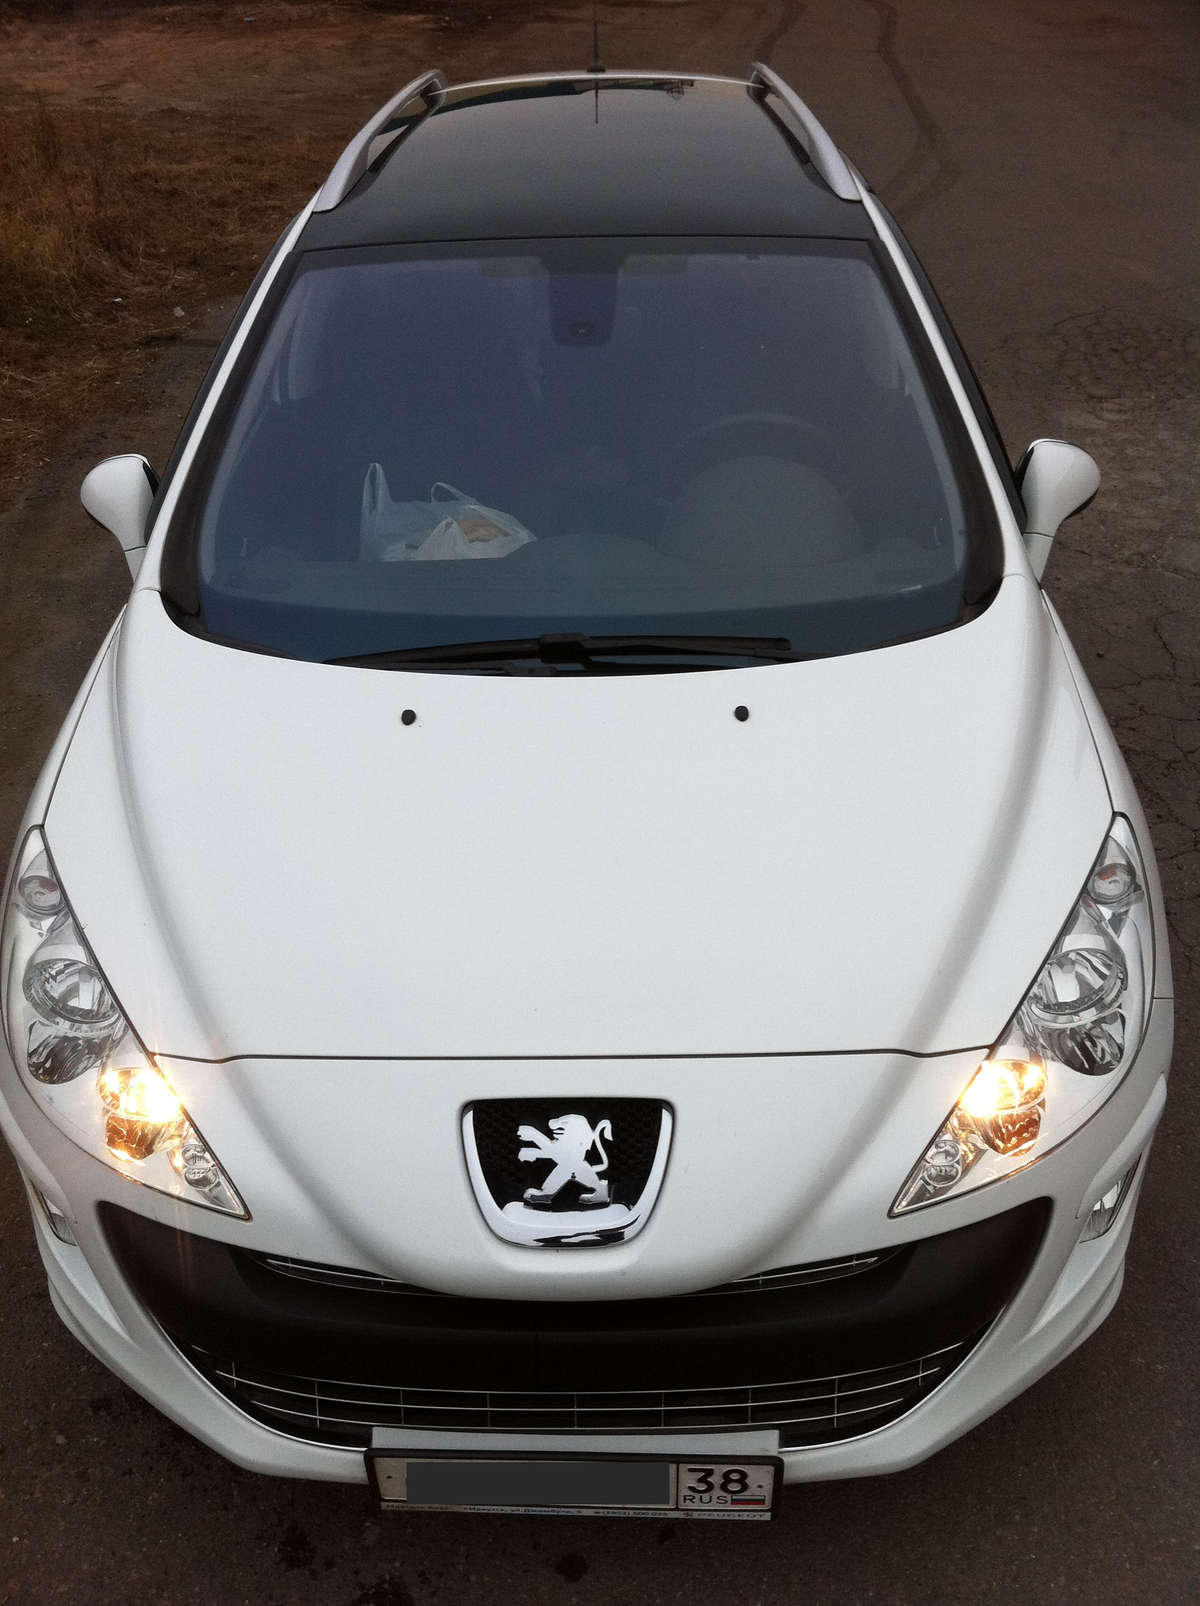 2010 peugeot 308 sw pictures gasoline ff automatic for sale. Black Bedroom Furniture Sets. Home Design Ideas